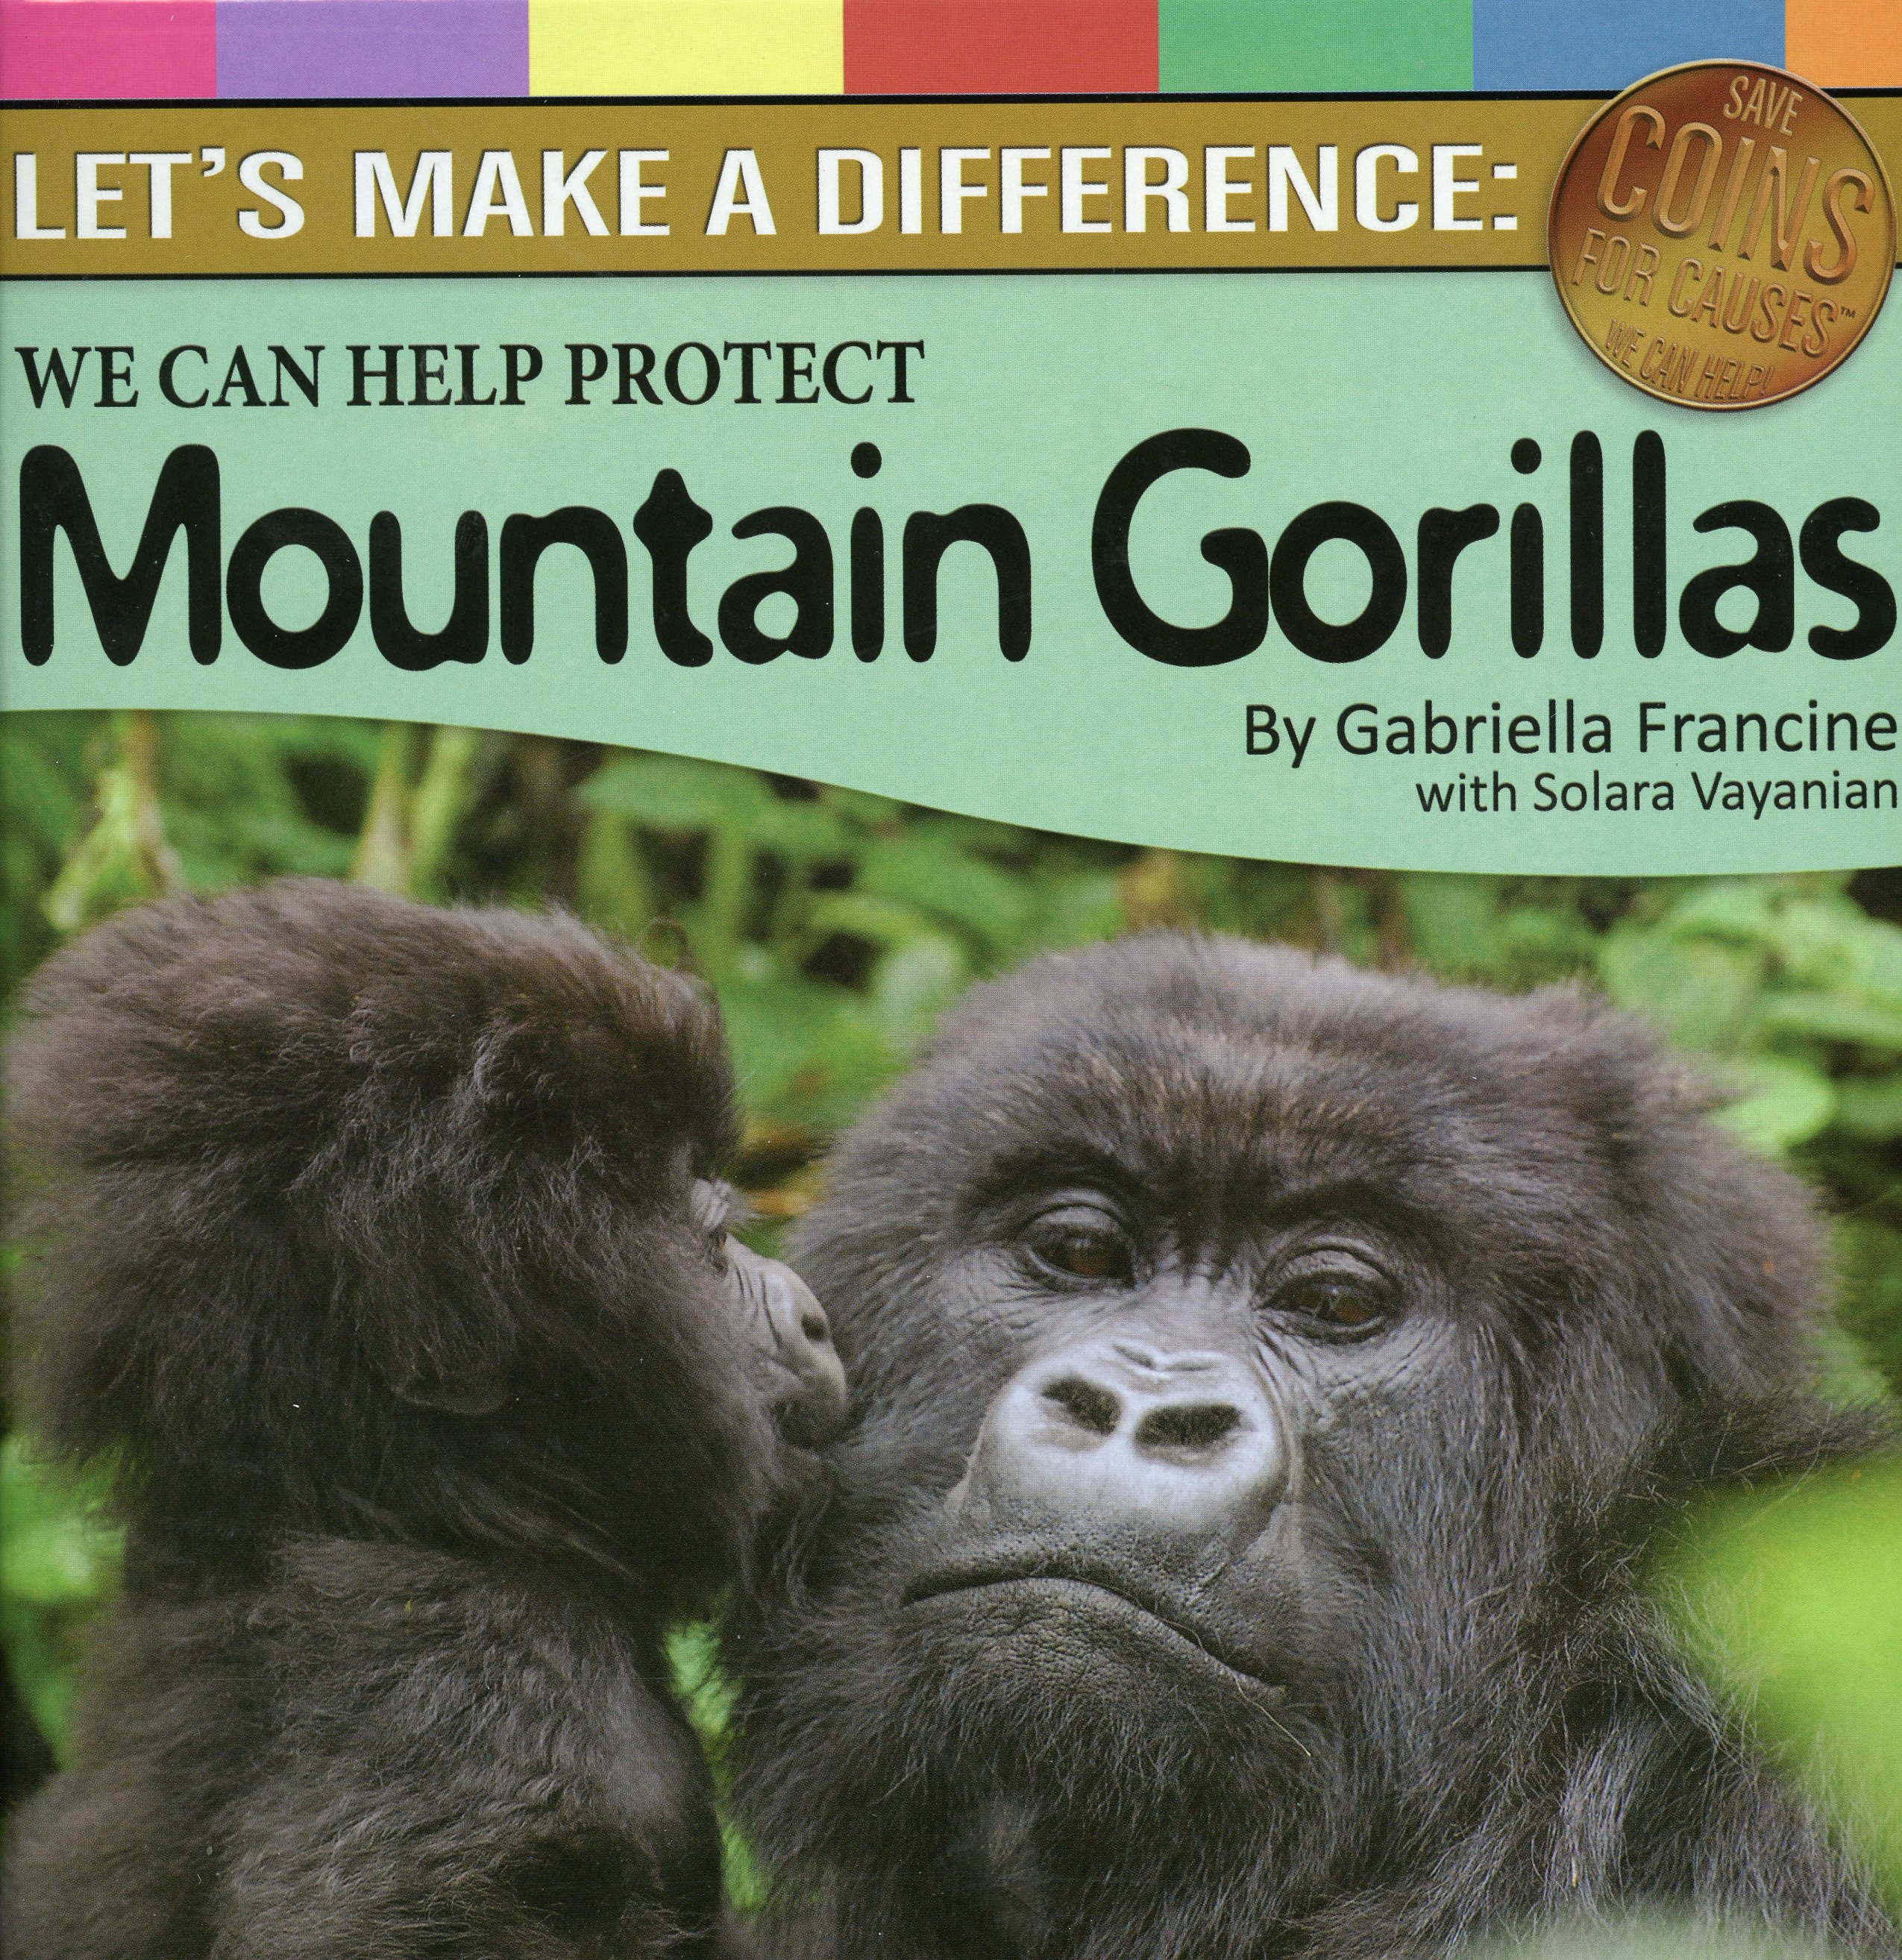 https://0201.nccdn.net/1_2/000/000/16e/1e4/mountain-gorilla.jpg